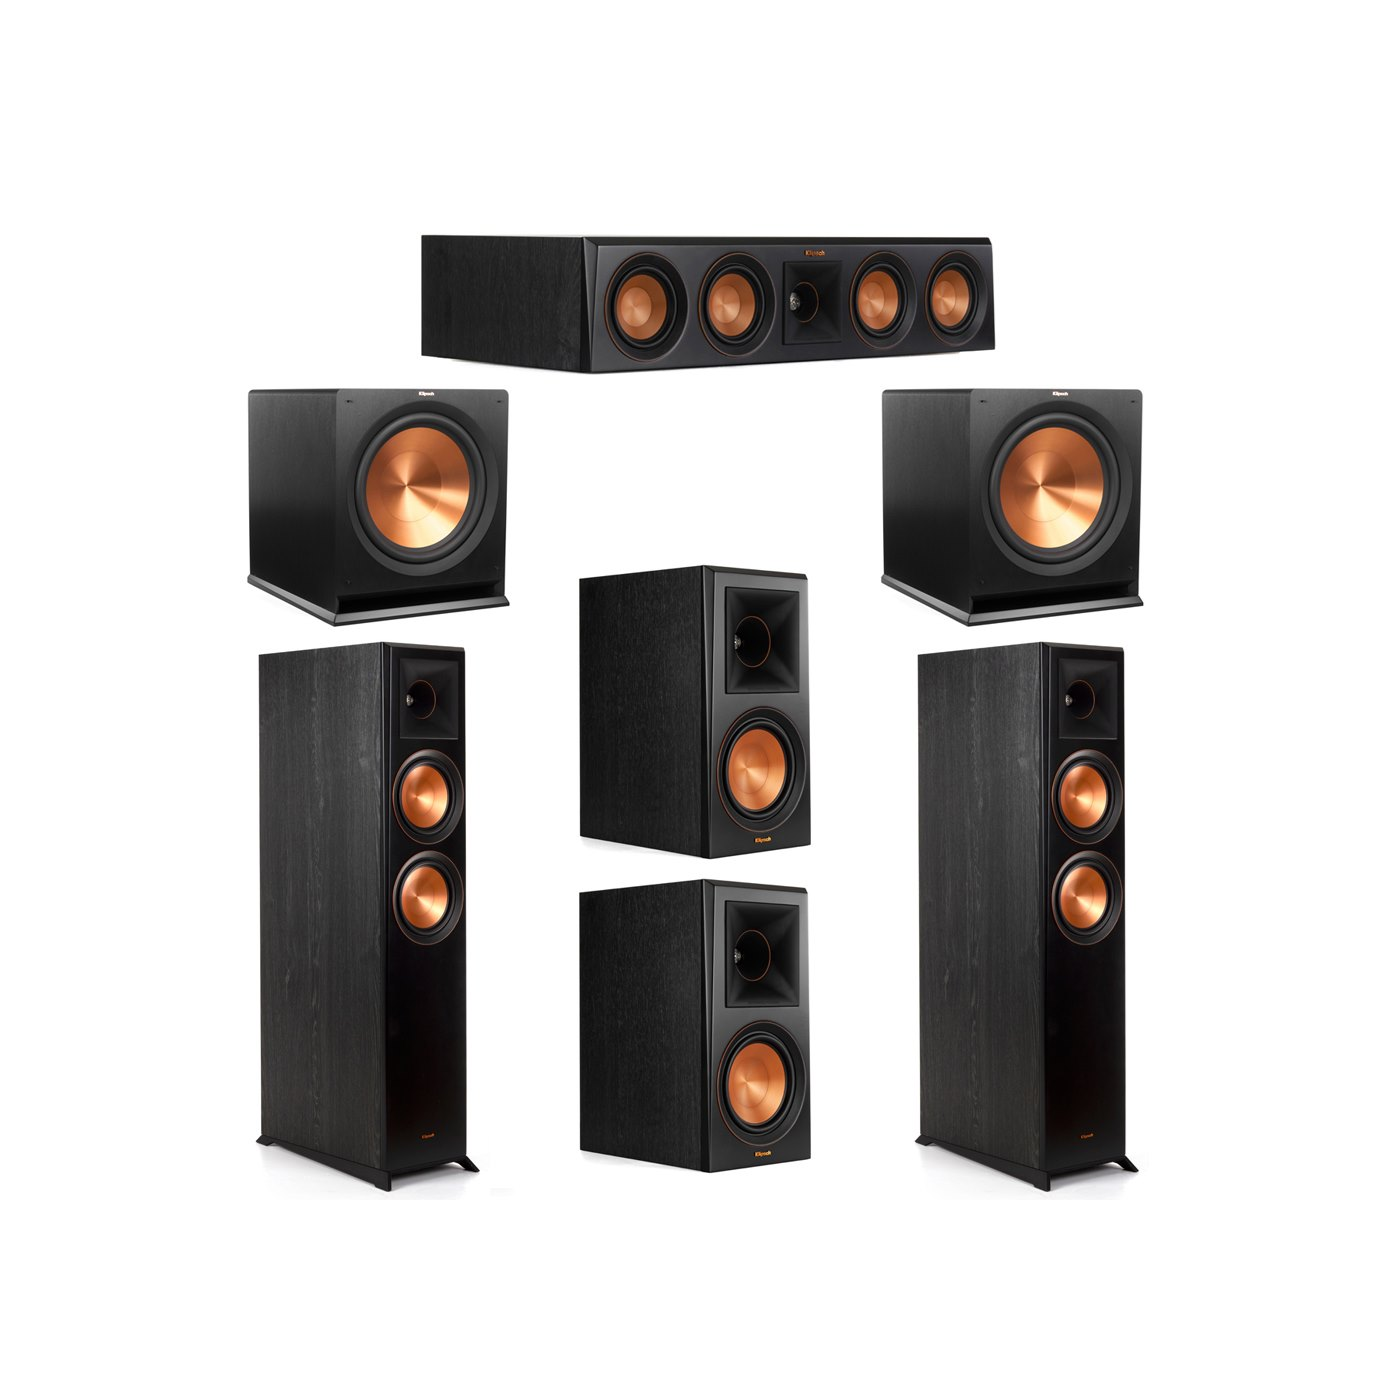 Klipsch 5.2 System with 2 RP-6000F Floorstanding Speakers, 1 Klipsch RP-404C Center Speaker, 2 Klipsch RP-600M Surround Speakers, 2 Klipsch R-115SW Subwoofers